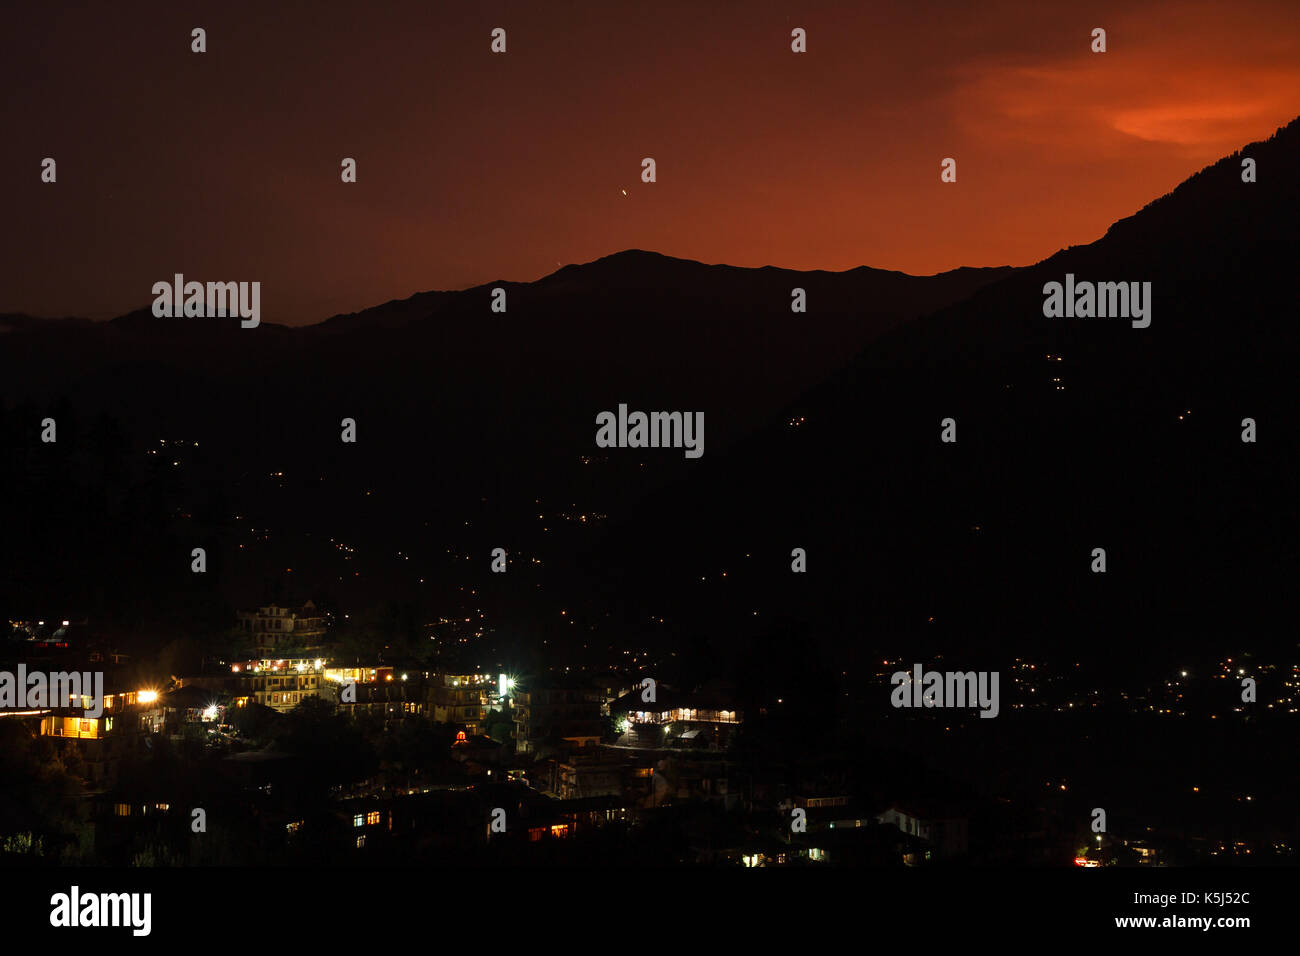 Sunset over Naggar village, Himachal Pradesh - Stock Image